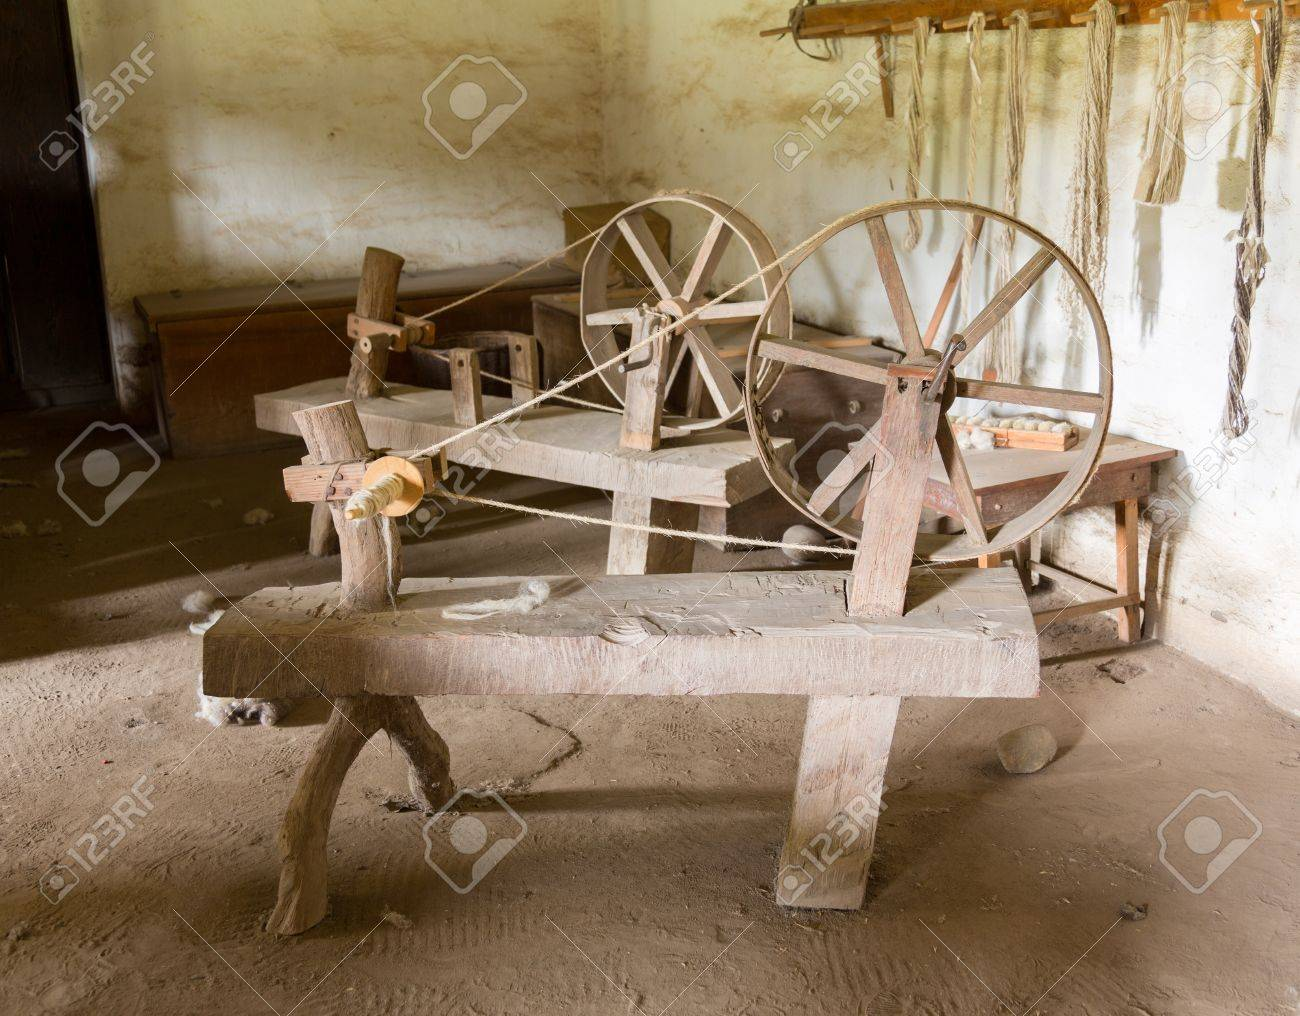 Old Spinning Wheel Made From Timber And Branches In La Purisima Stock Photo Picture And Royalty Free Image Image 17173501